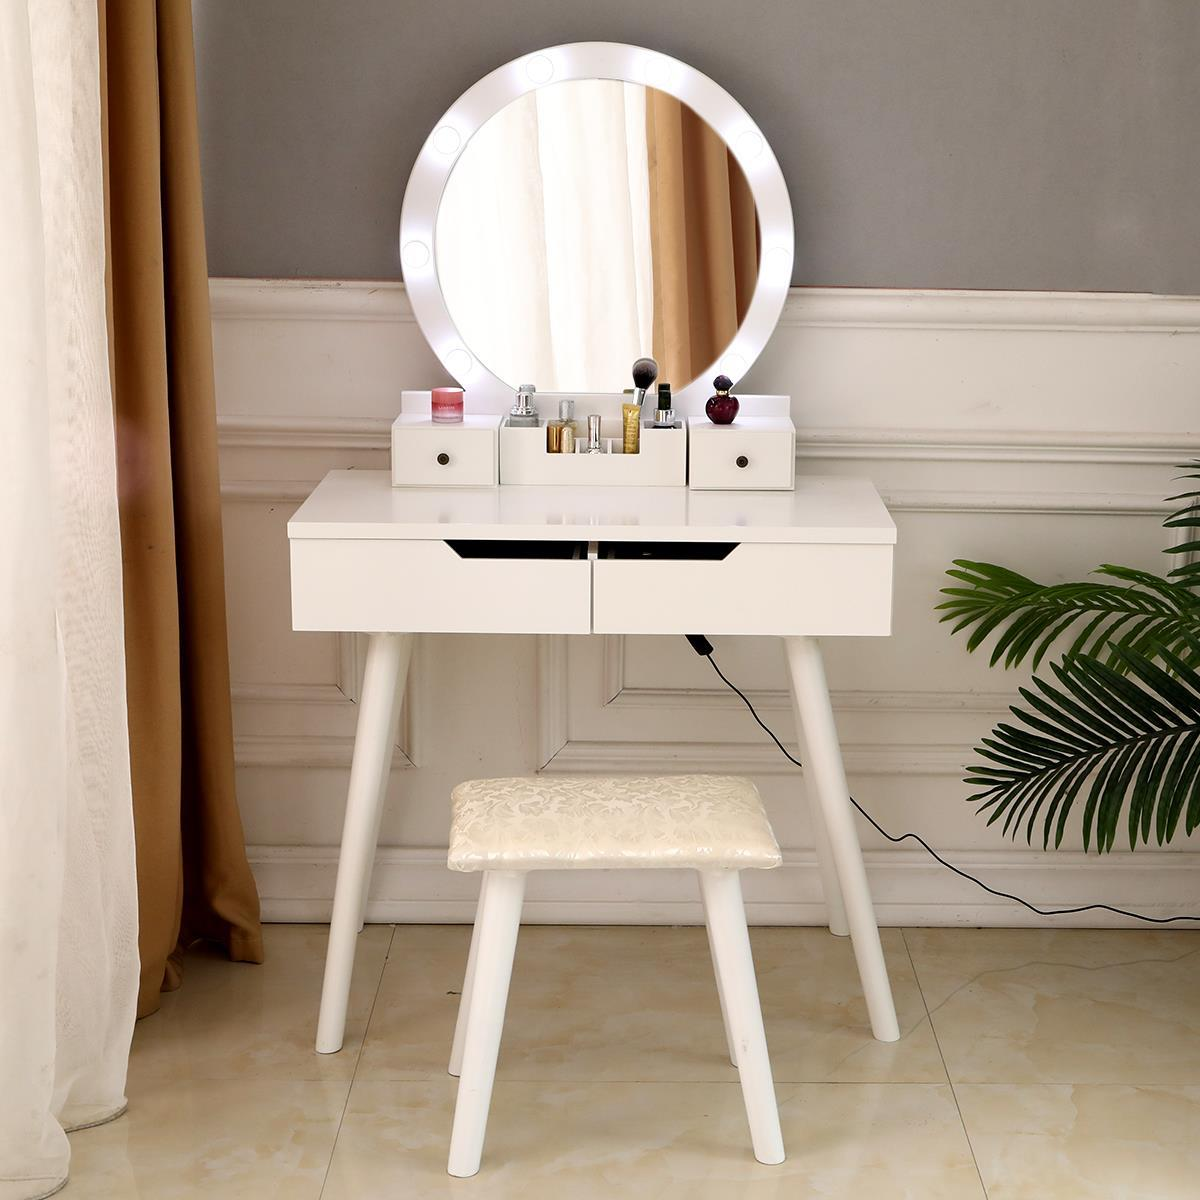 White Dressing Desk With 4 Drawers And Cushioned Stool For Bedroom M W Makeup Vanity Table Set With Round Mirror Built In 3 Color Led Light Vanities Vanity Benches Furniture